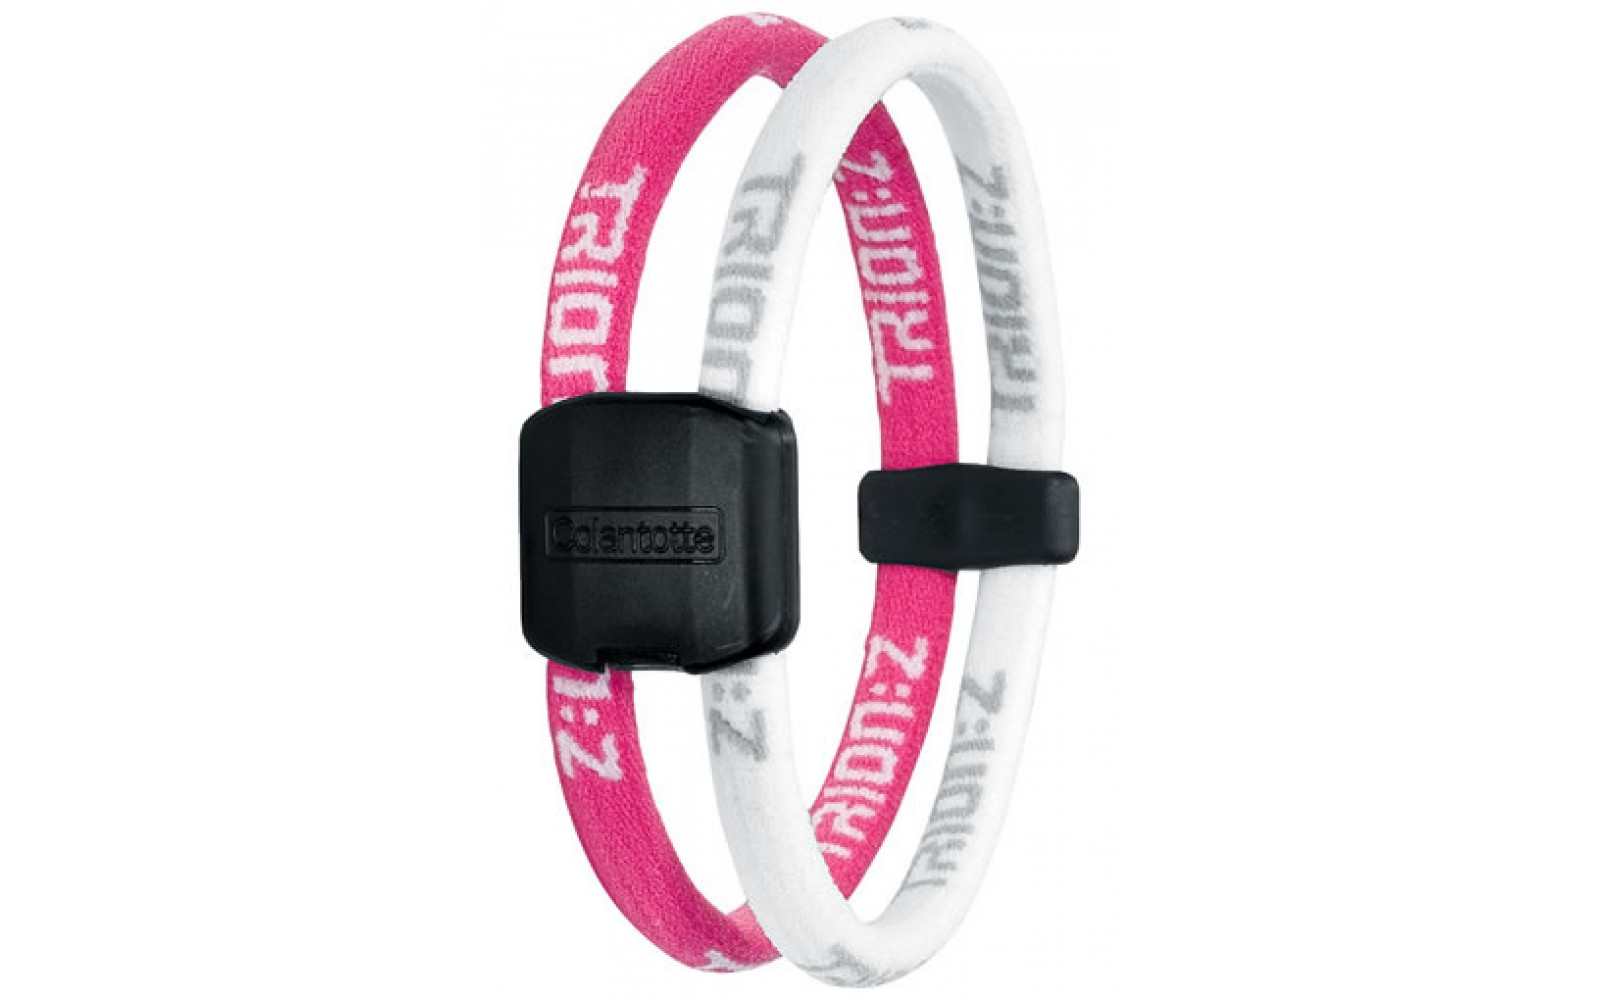 Magneet Armband Trion Z Magneet Armband Kleur Roze Wit Maat Small